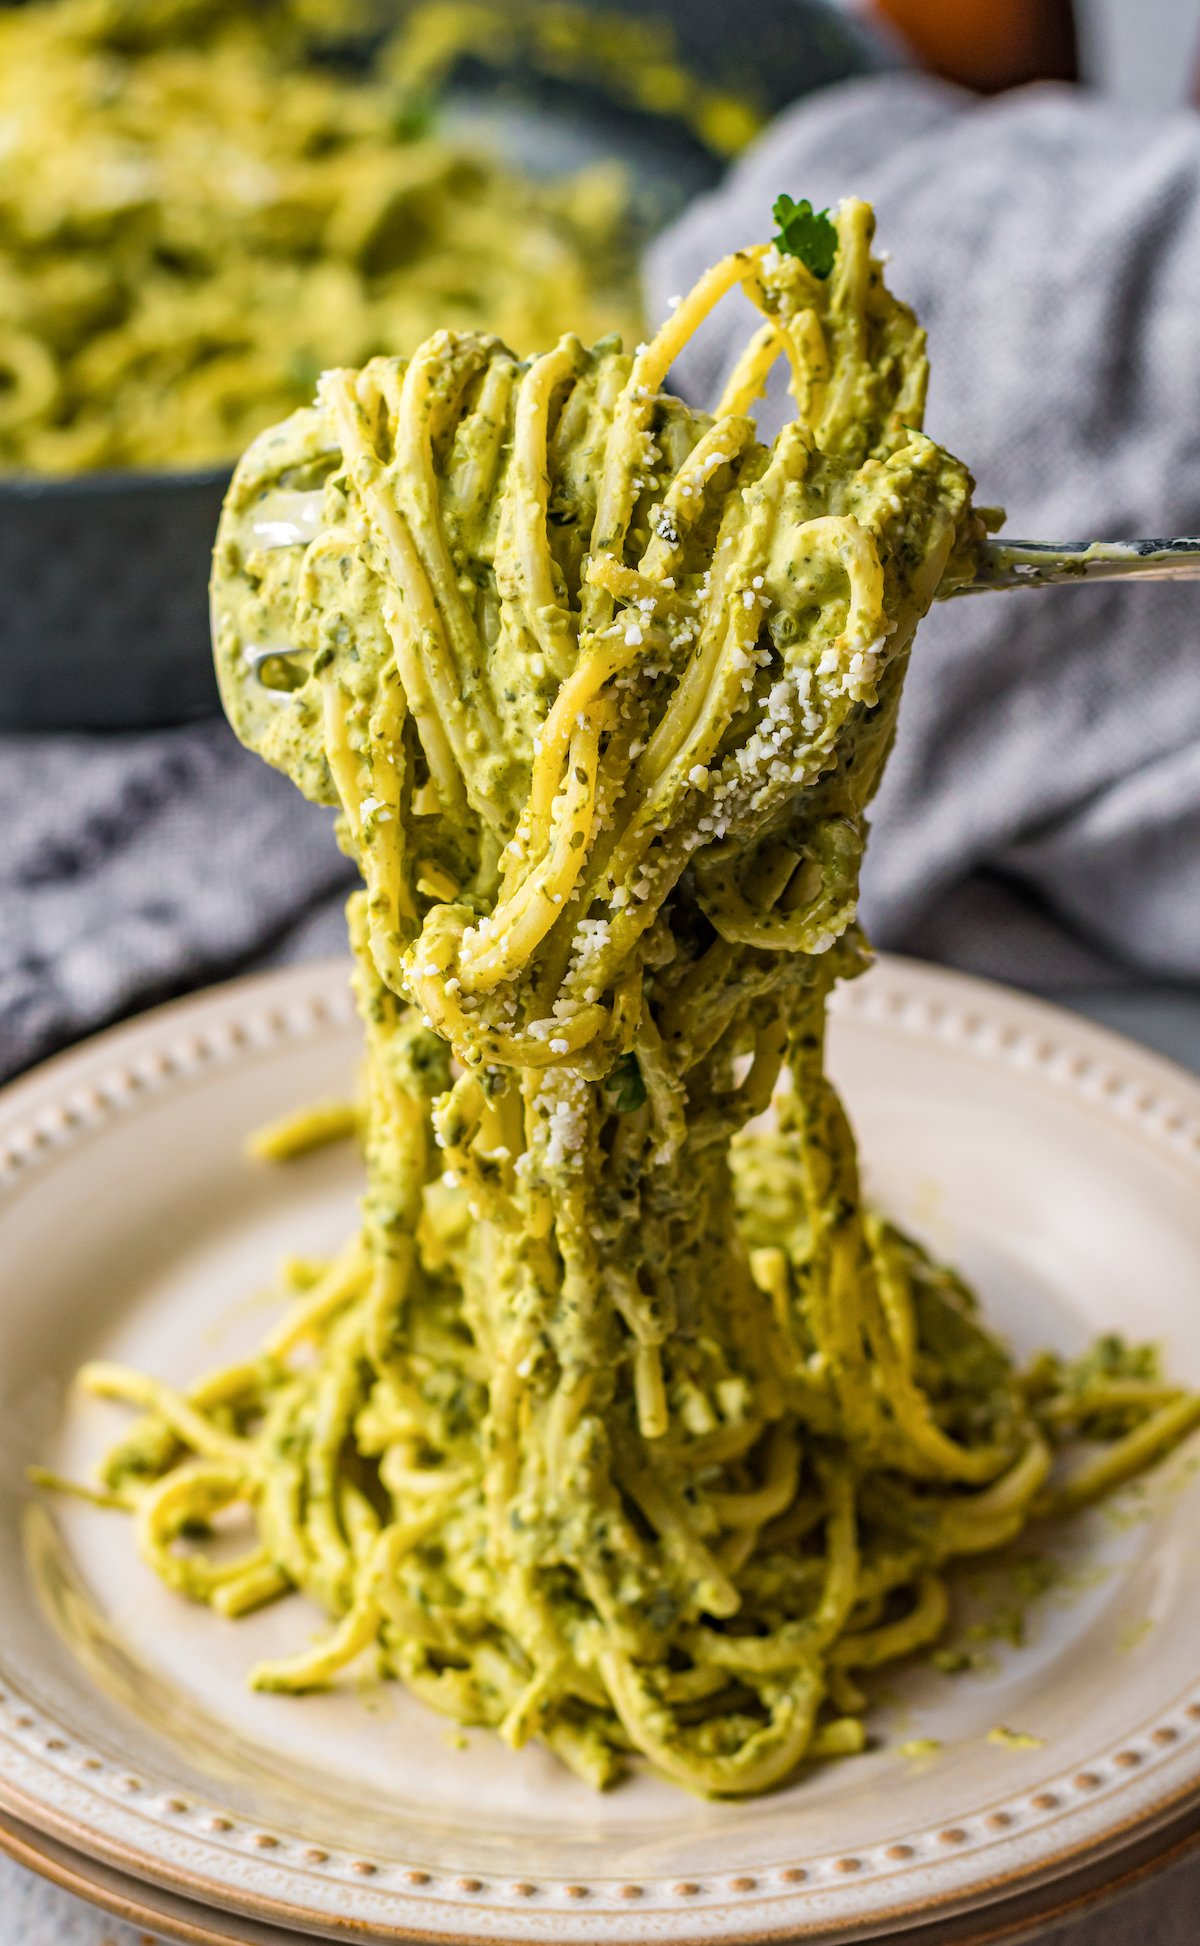 A fork twirls green Mexican spaghetti over a plate